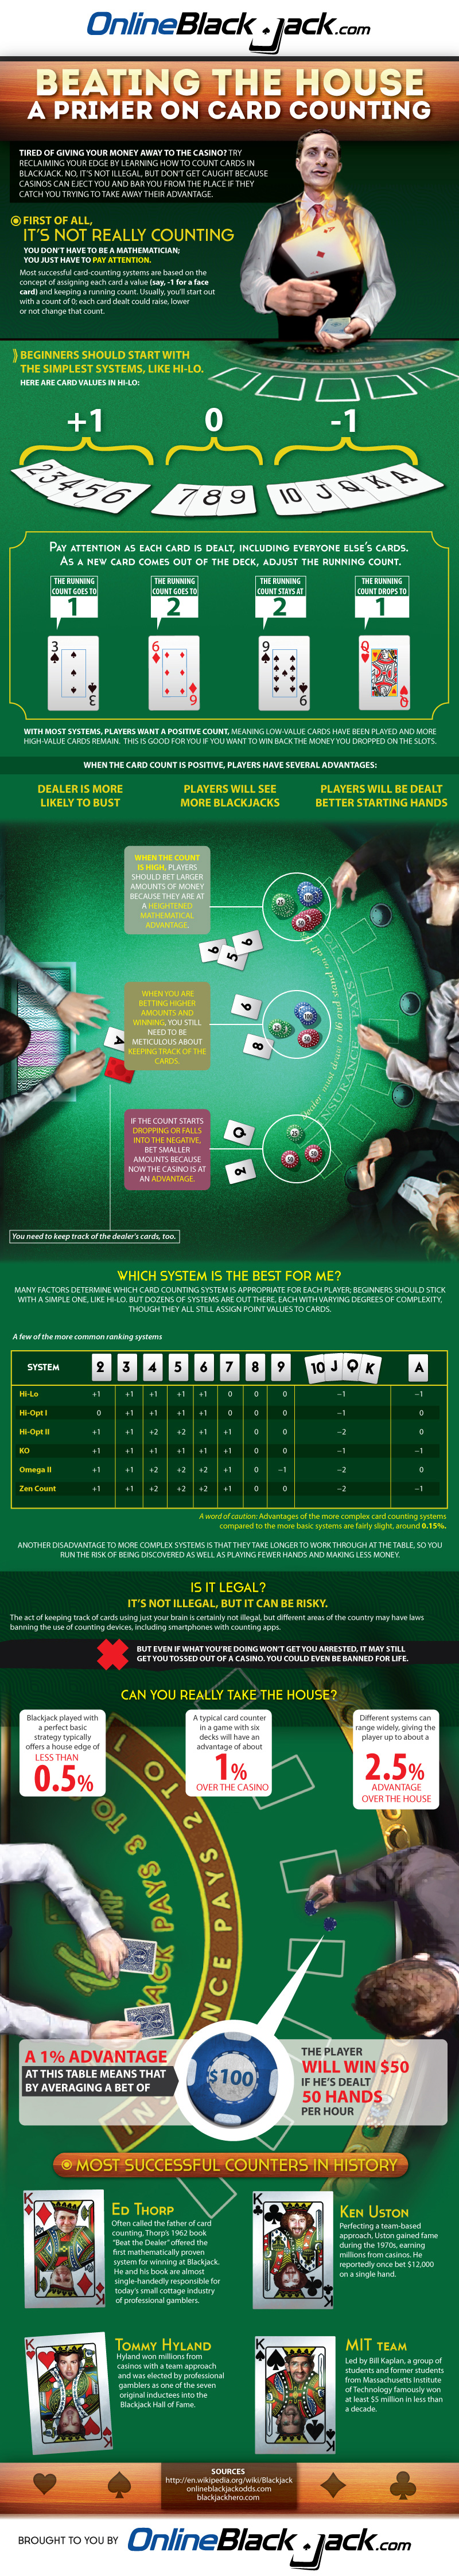 Card Counting Infographic